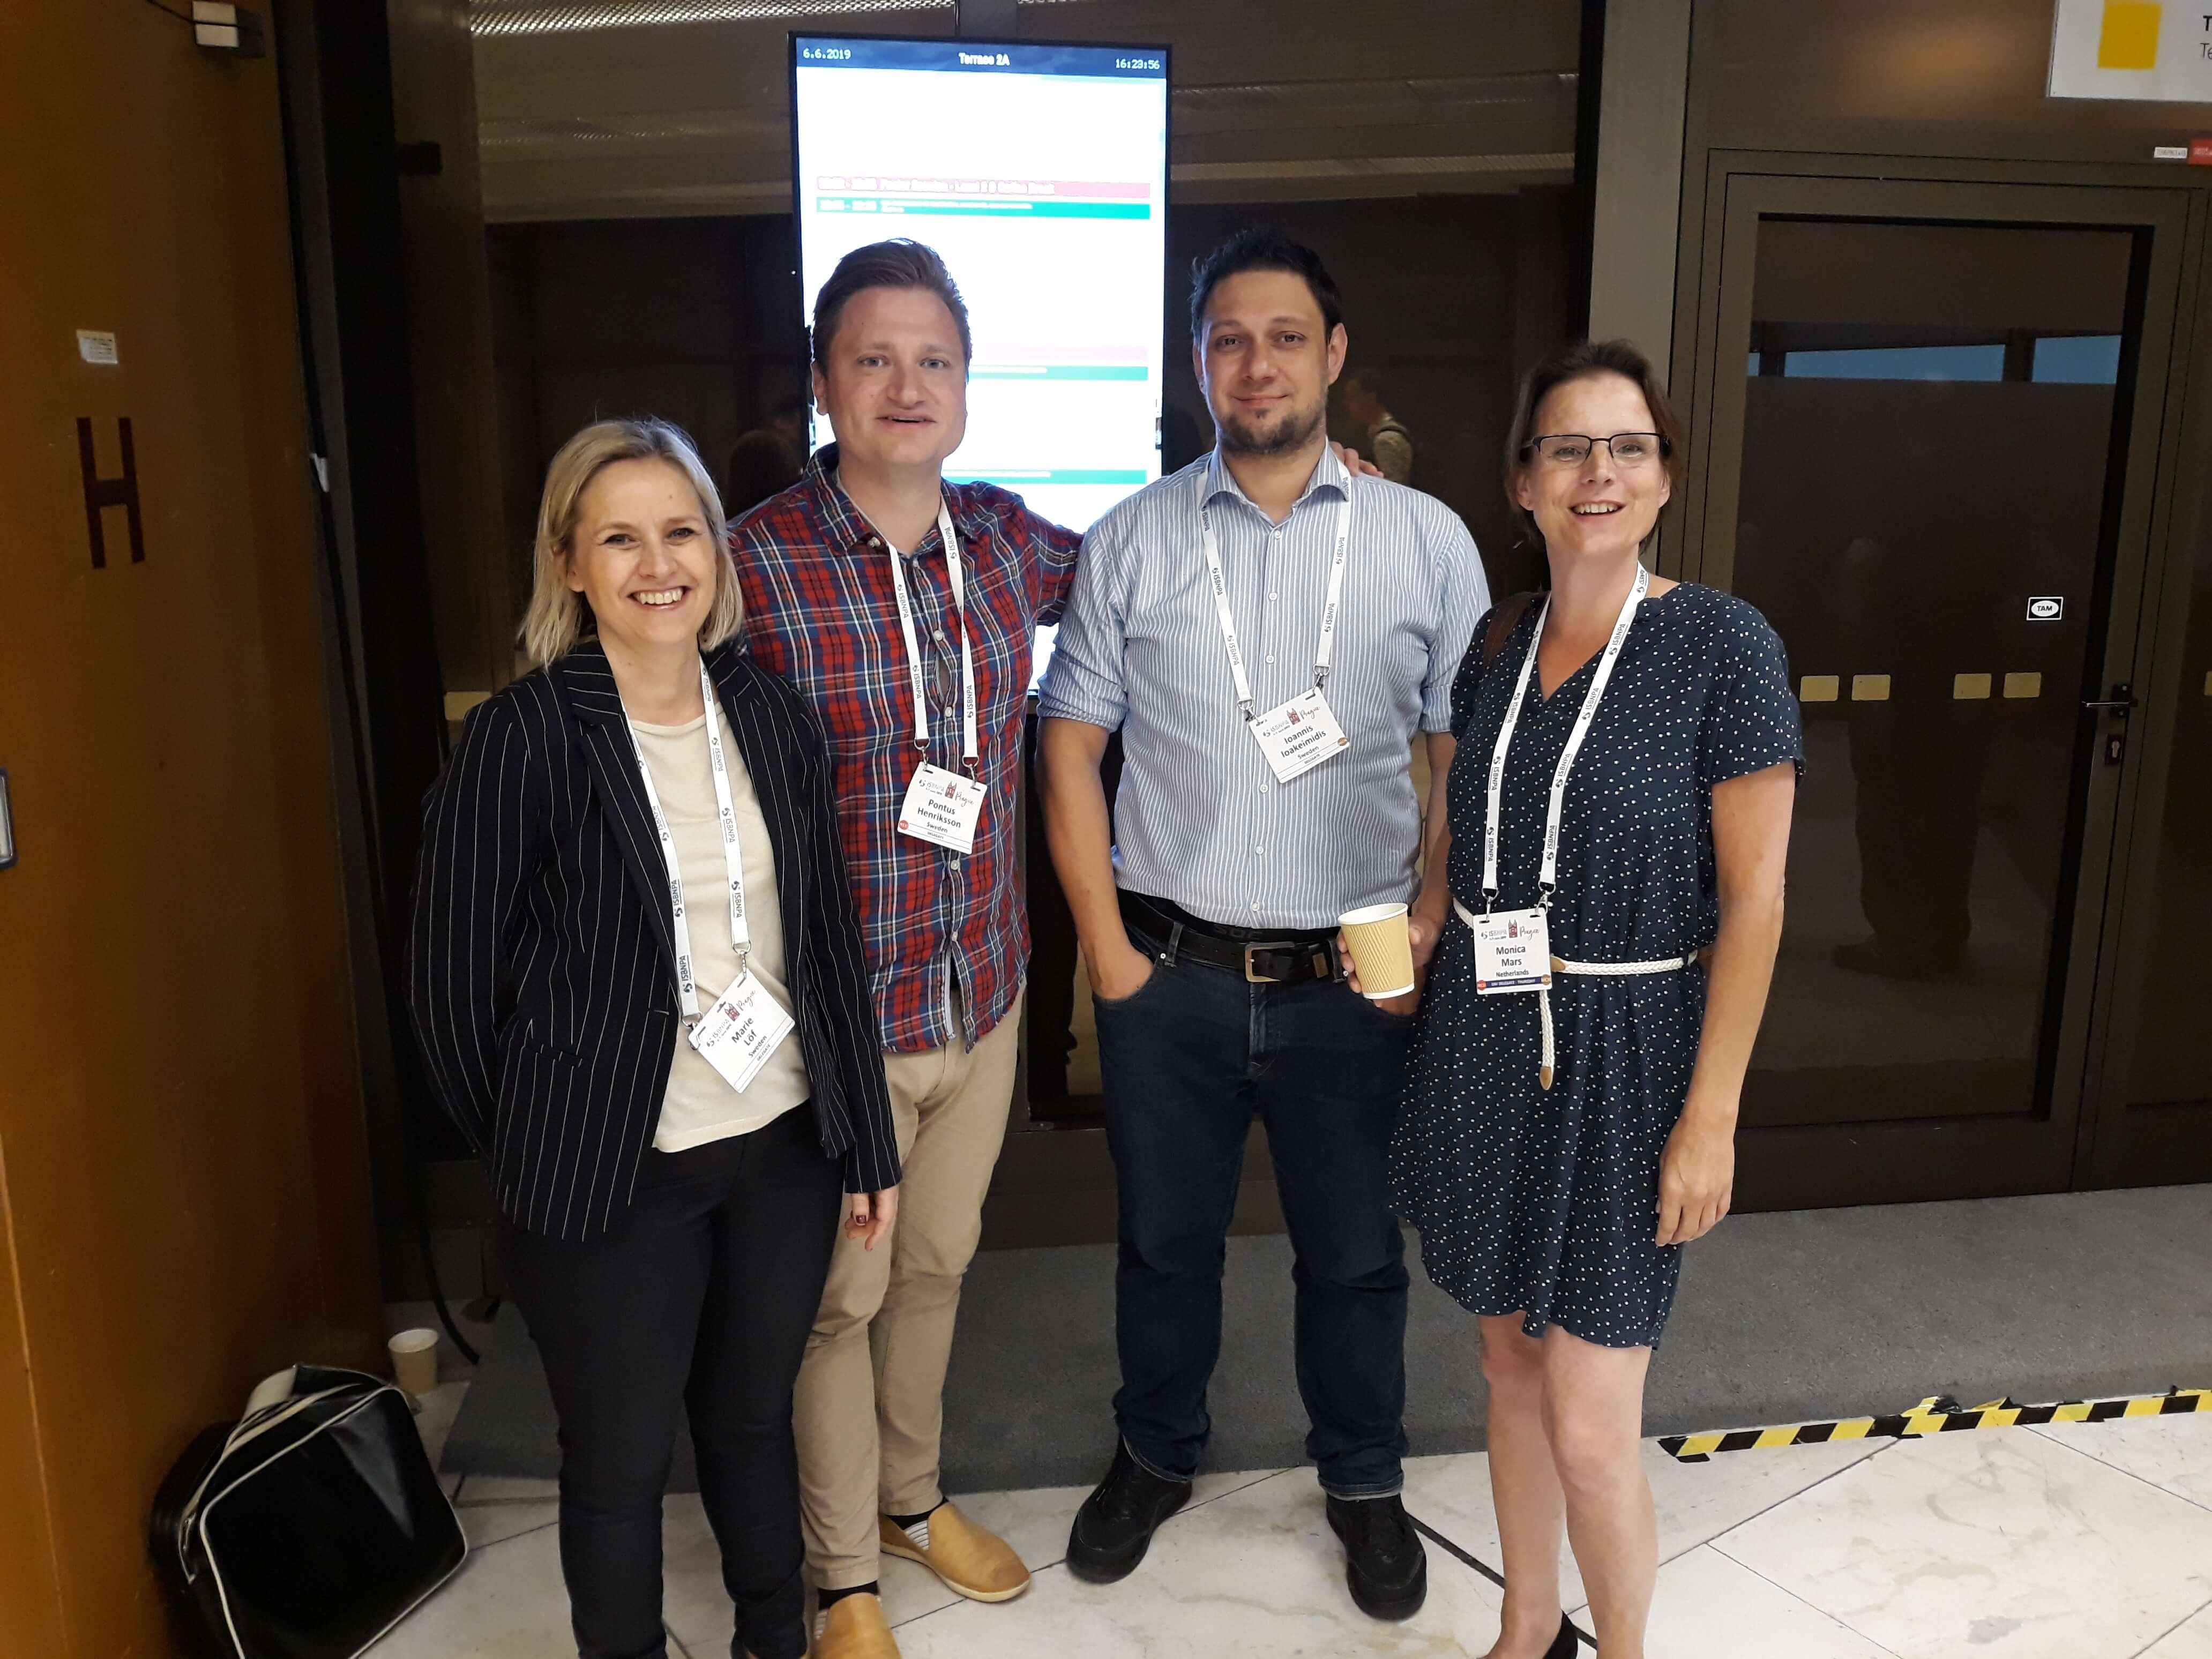 Researchers from BigO team up with researchers from KI for ISBNPA